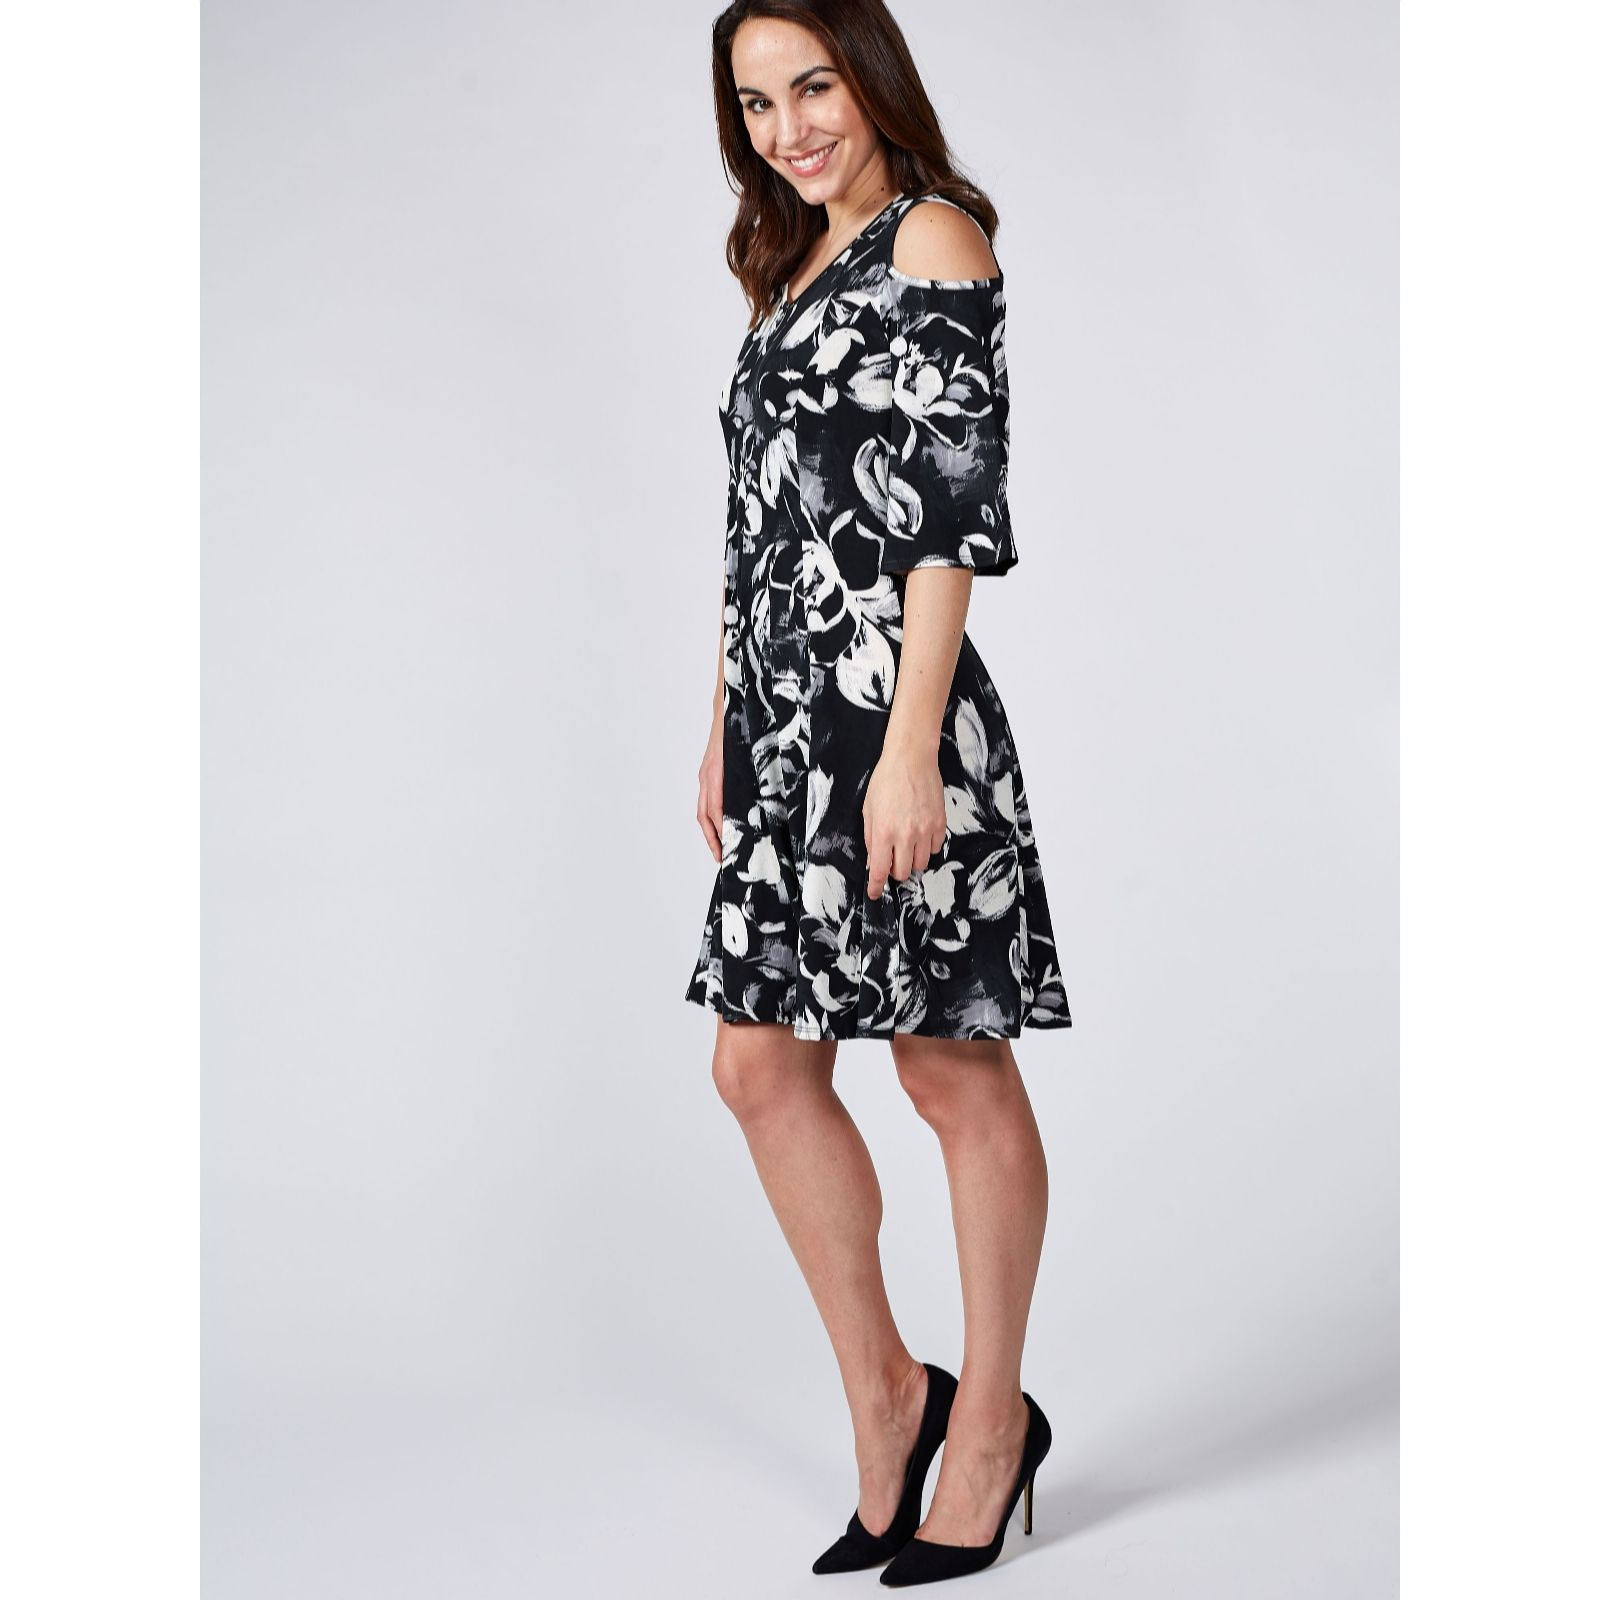 Women's Clothing Clothing, Shoes & Accessories Ask Grace Size 10 Sleeveless Floral Dress With Pockets